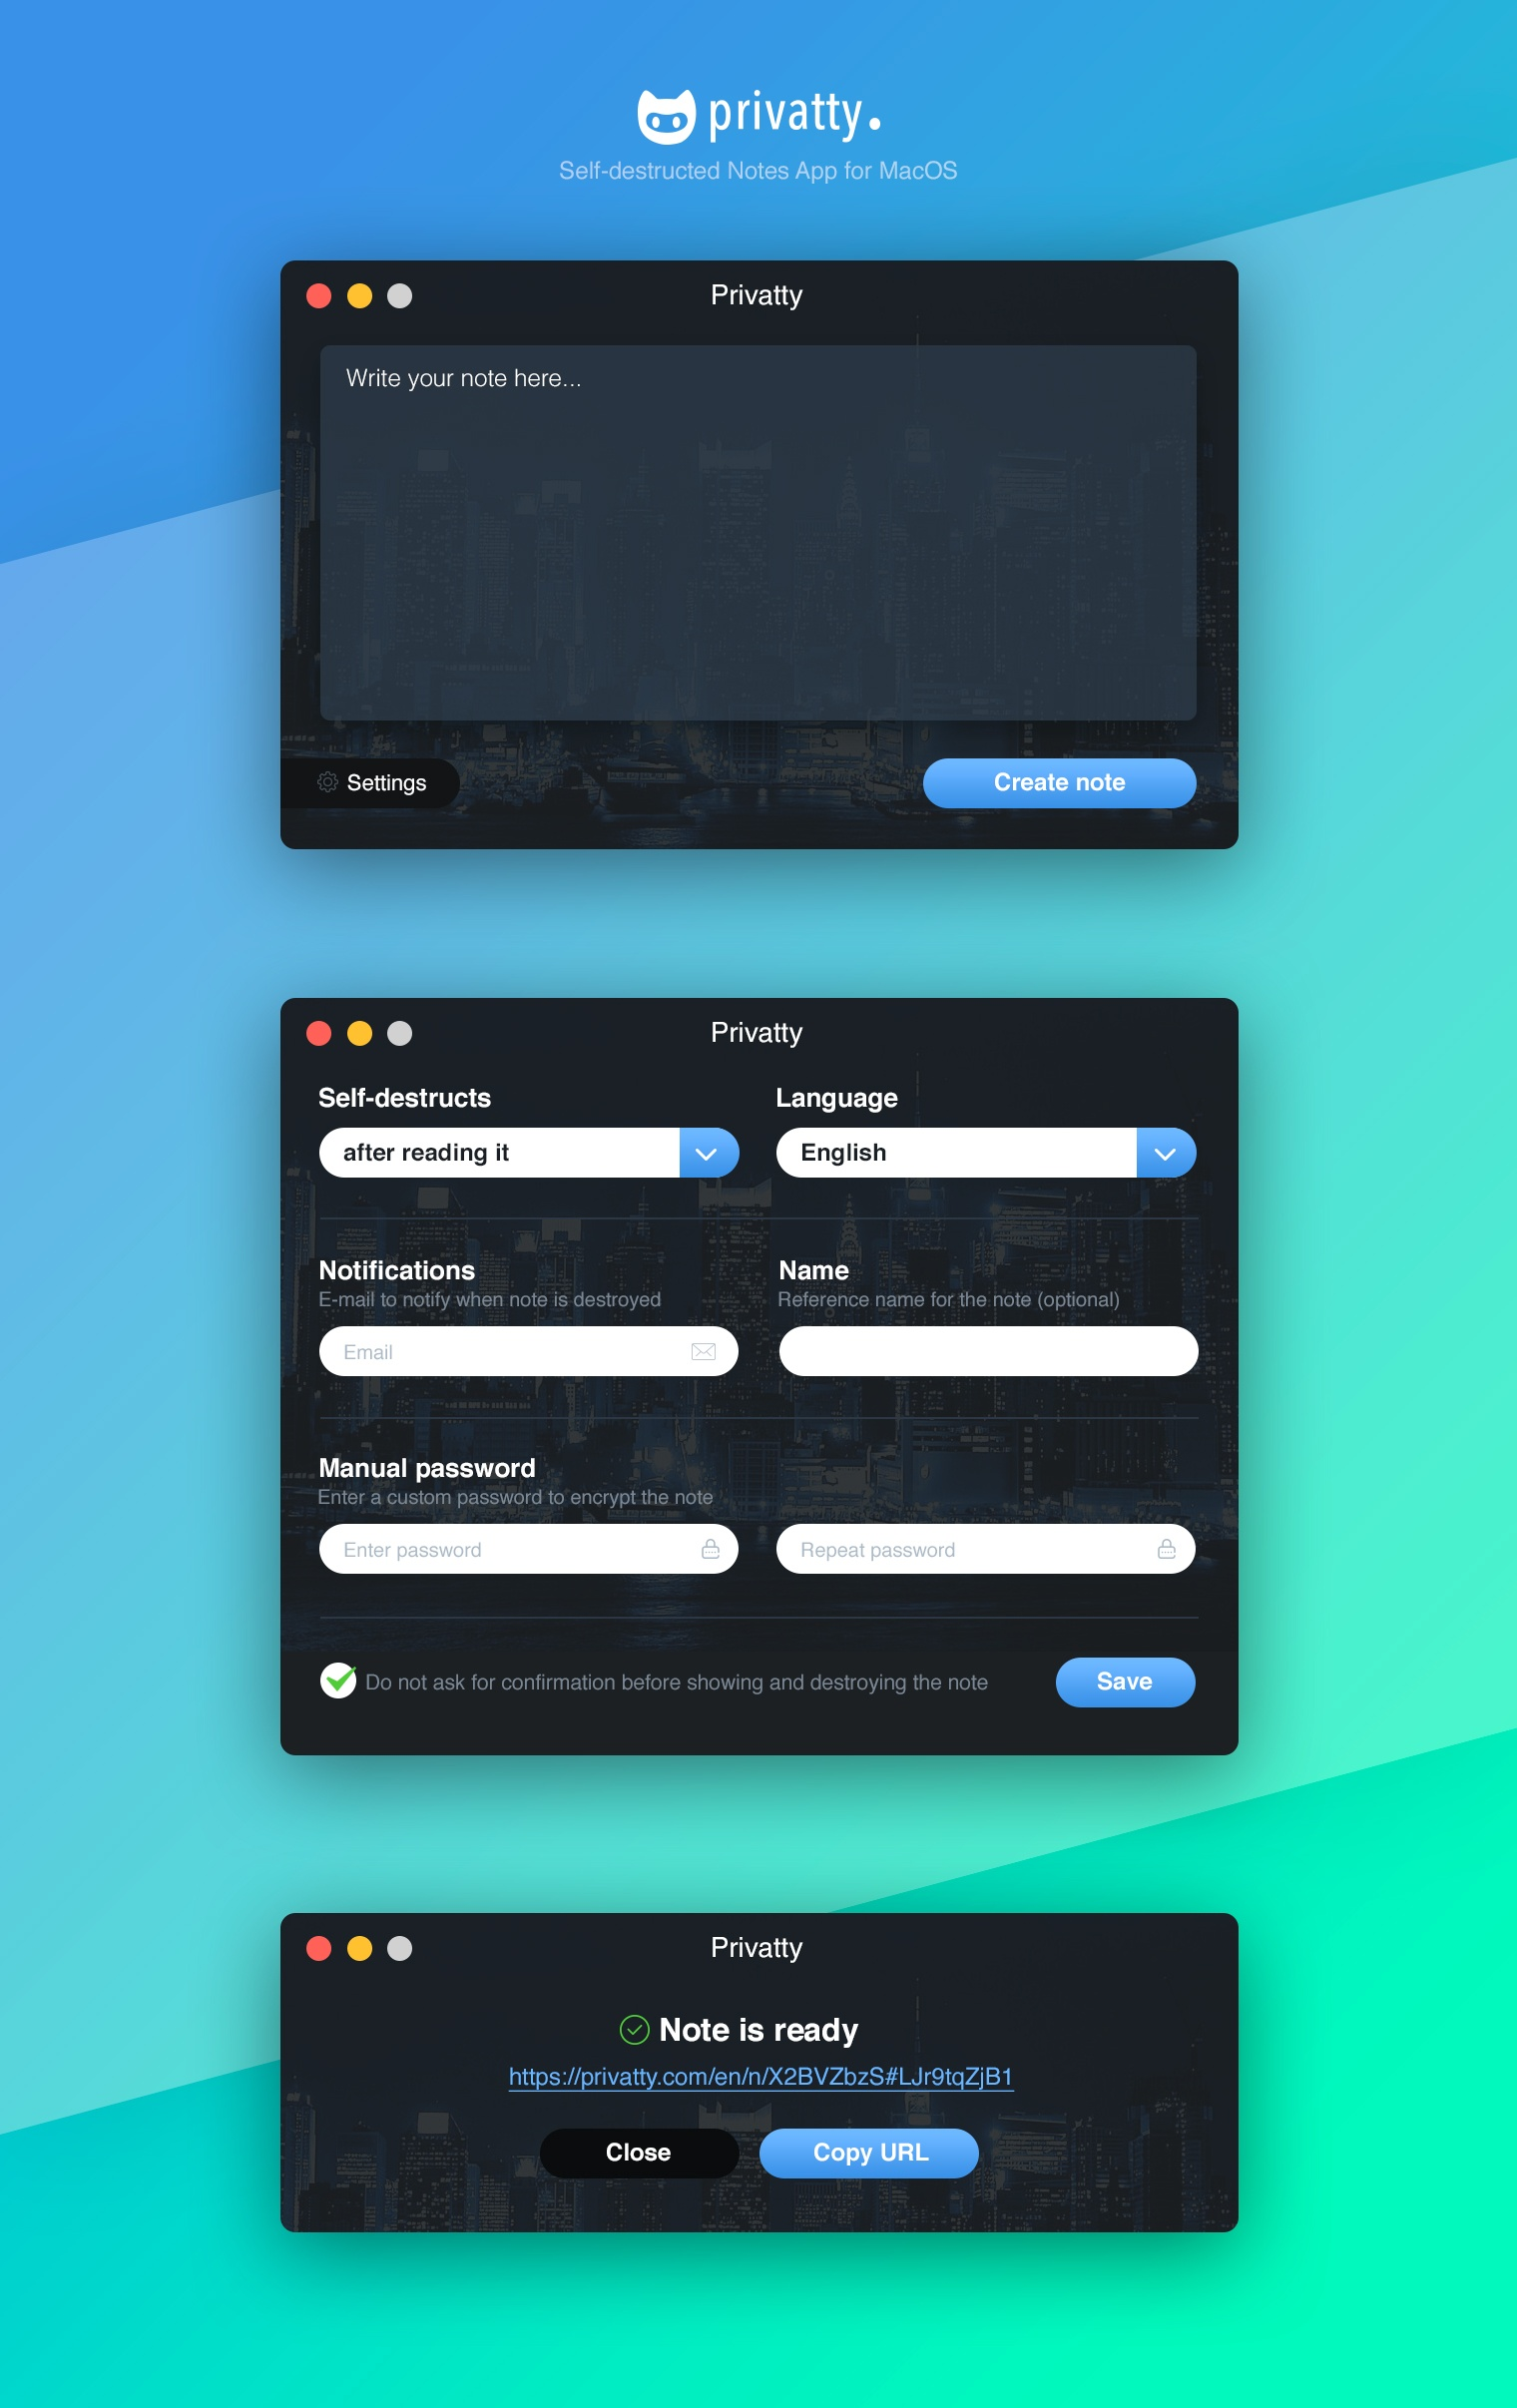 Privatty MacOS App Design №1